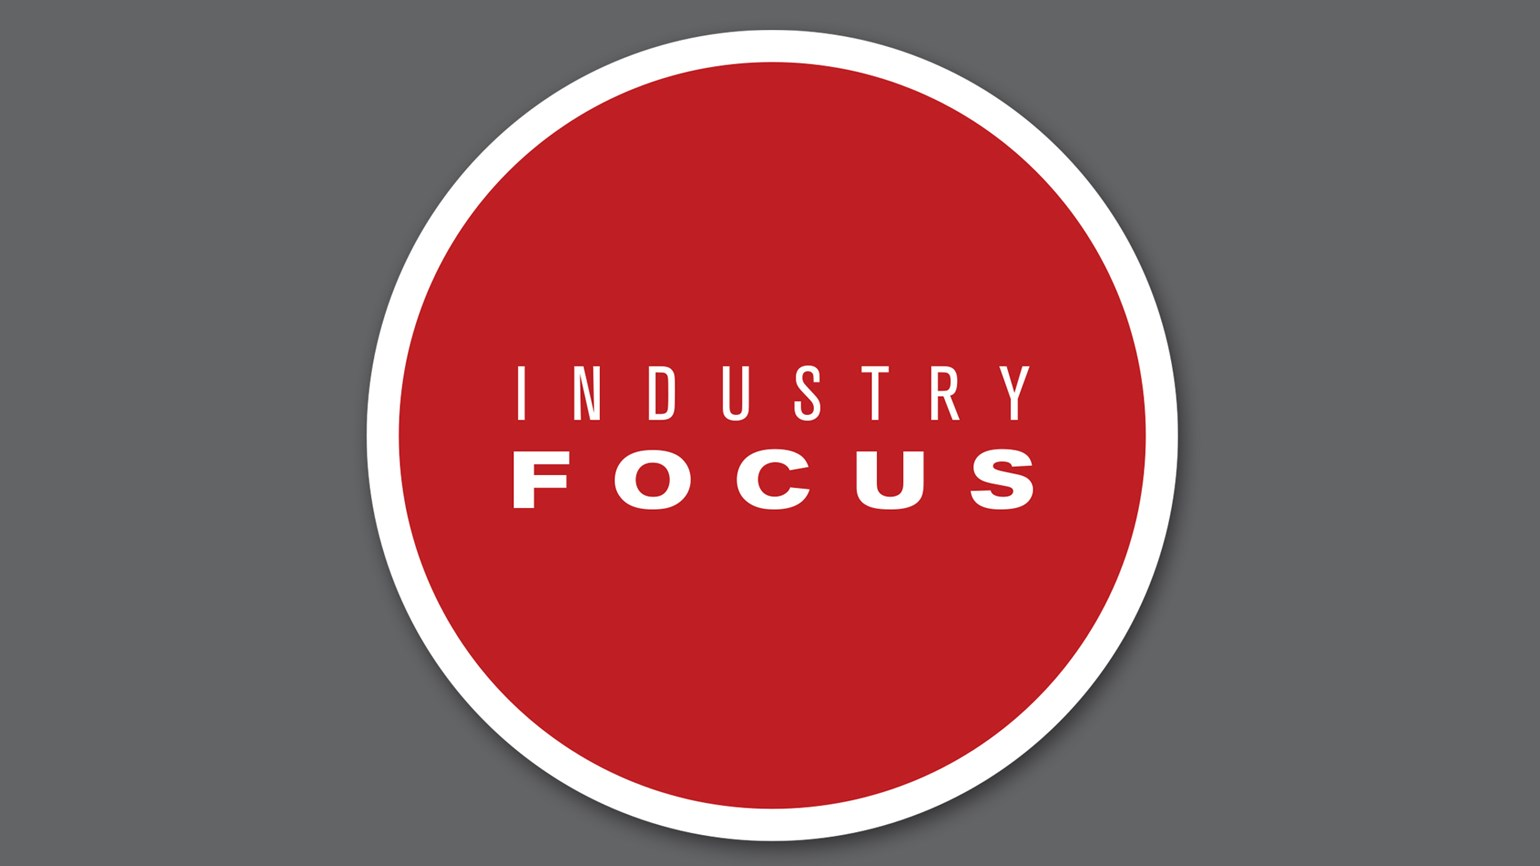 Industry Focus, Travel Planners International: Advertising agents